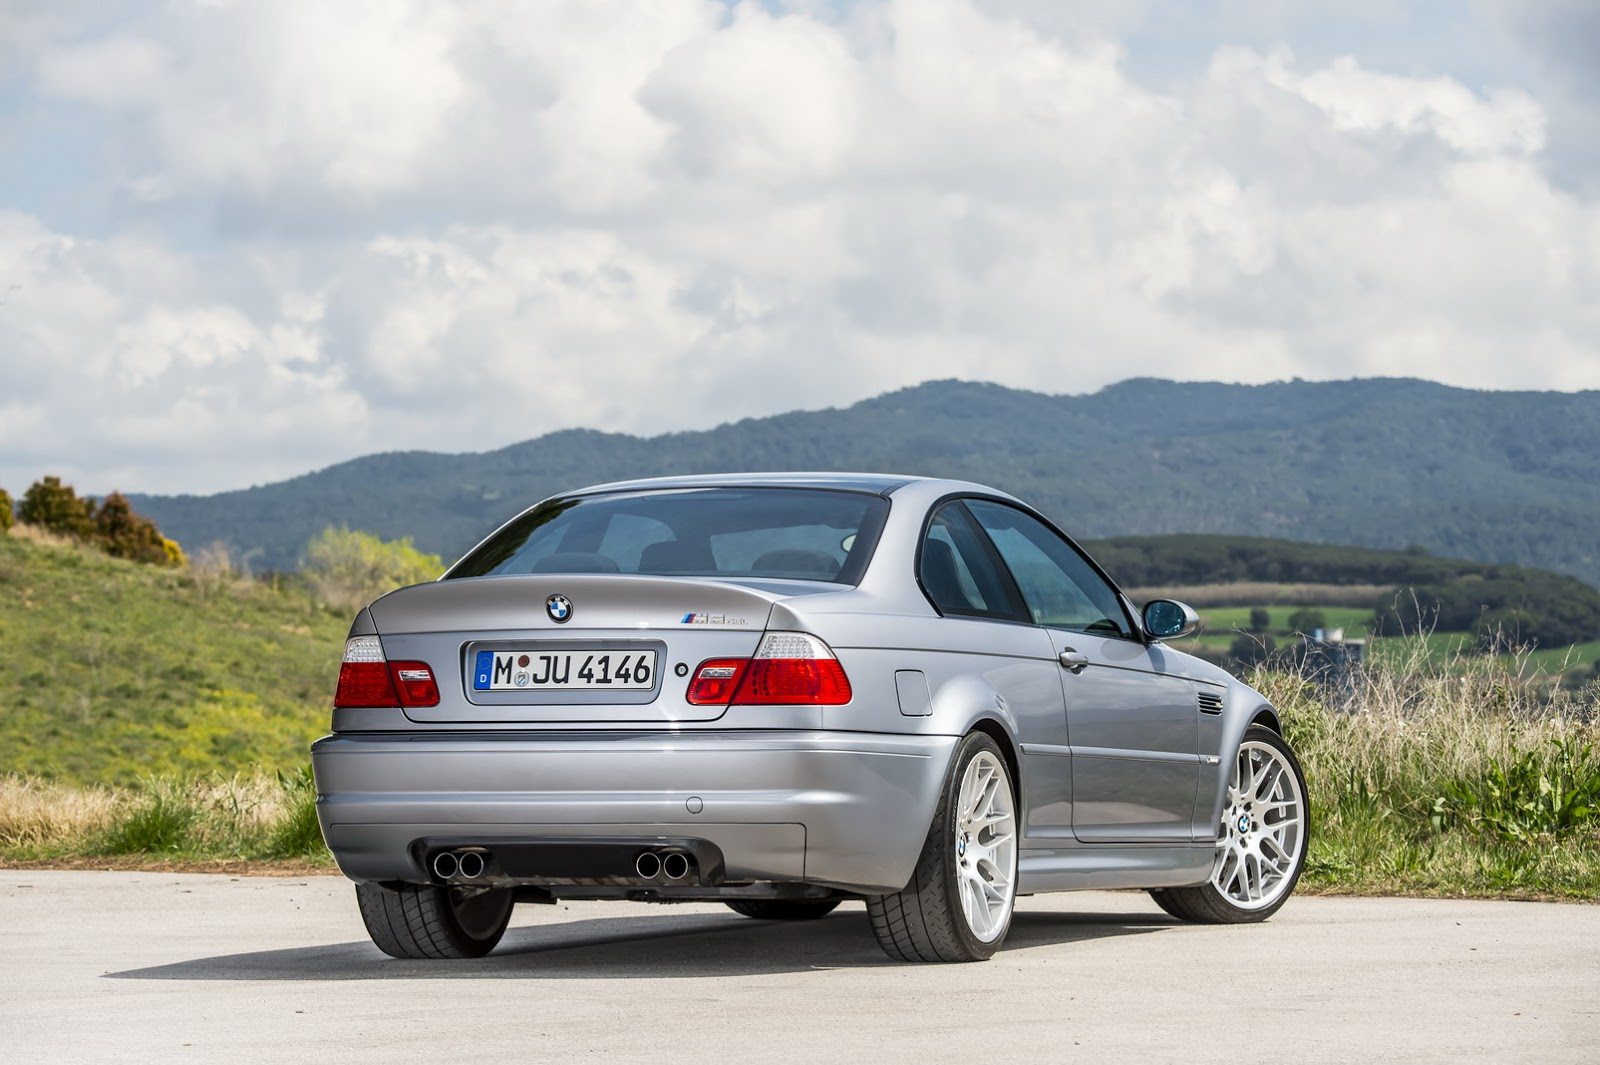 Wonderful image of BMW Drops New Gallery Of M4 GTS And Its E30 E36 And E46 M3  with #877744 color and 1600x1065 pixels